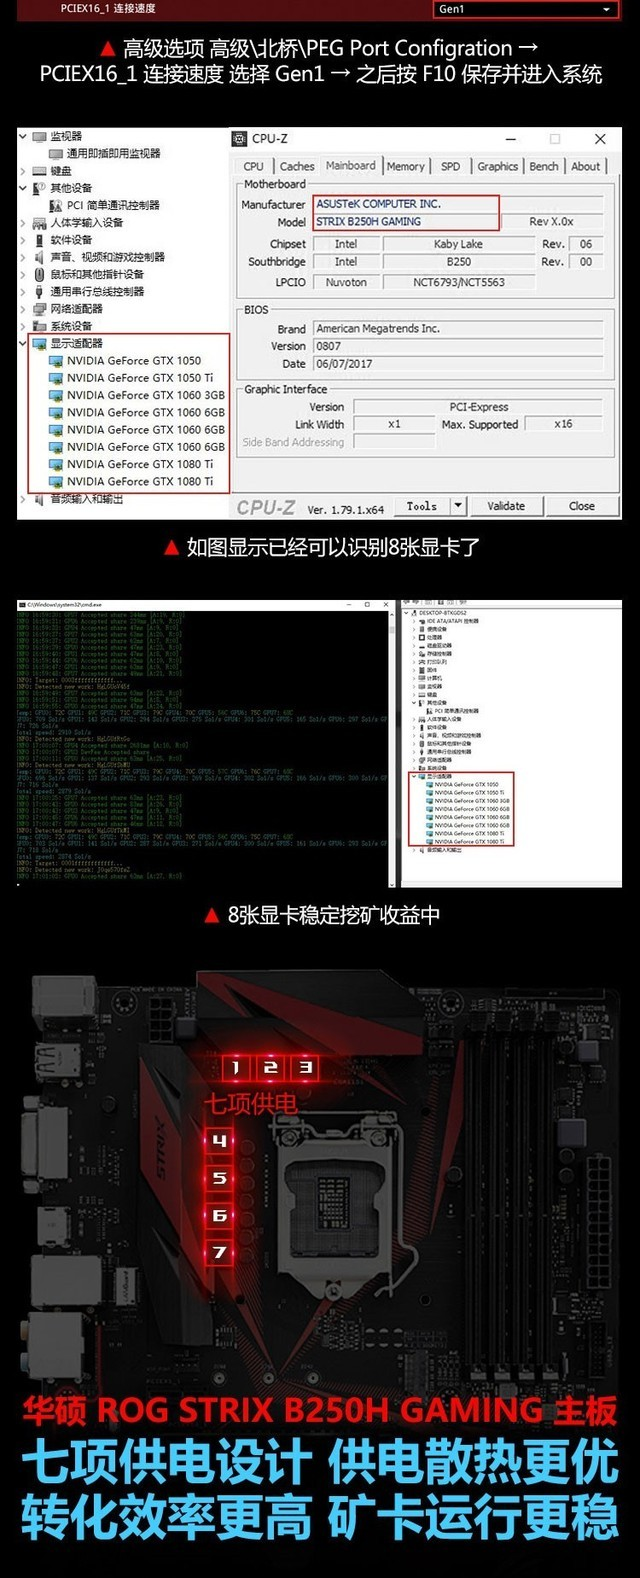 八卡挖矿 STRIX B250H GAMING售999元